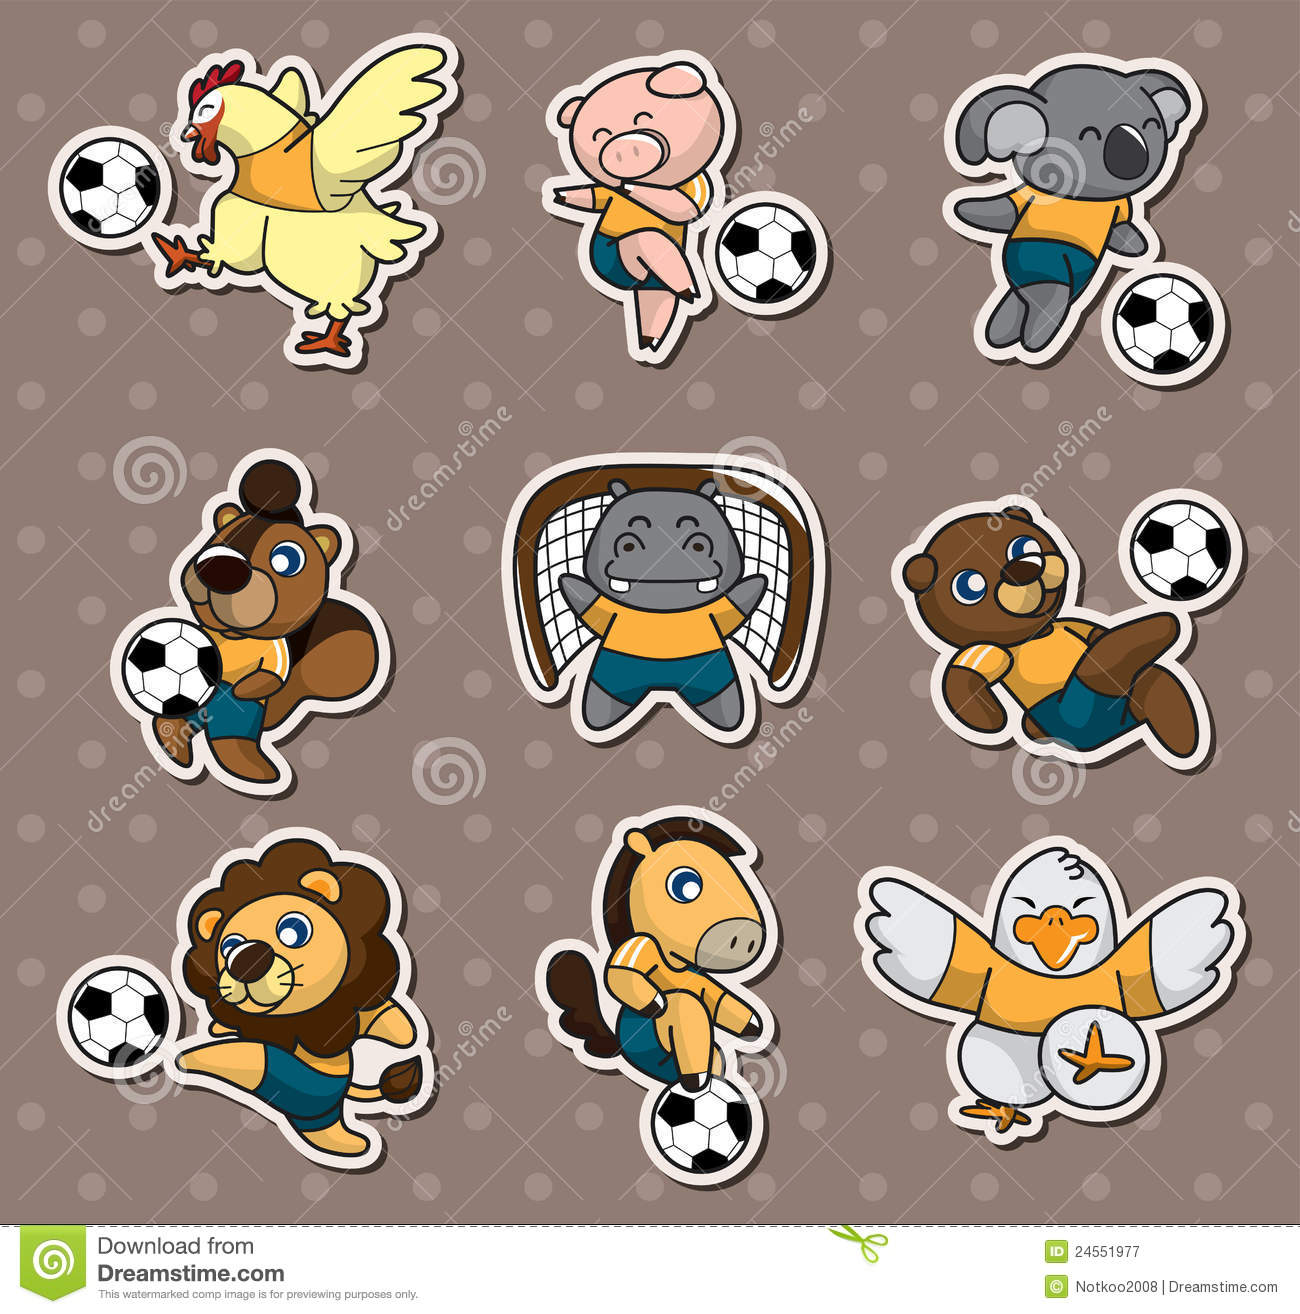 Cartoon Animal Soccer Player Stickers Royalty Free Stock